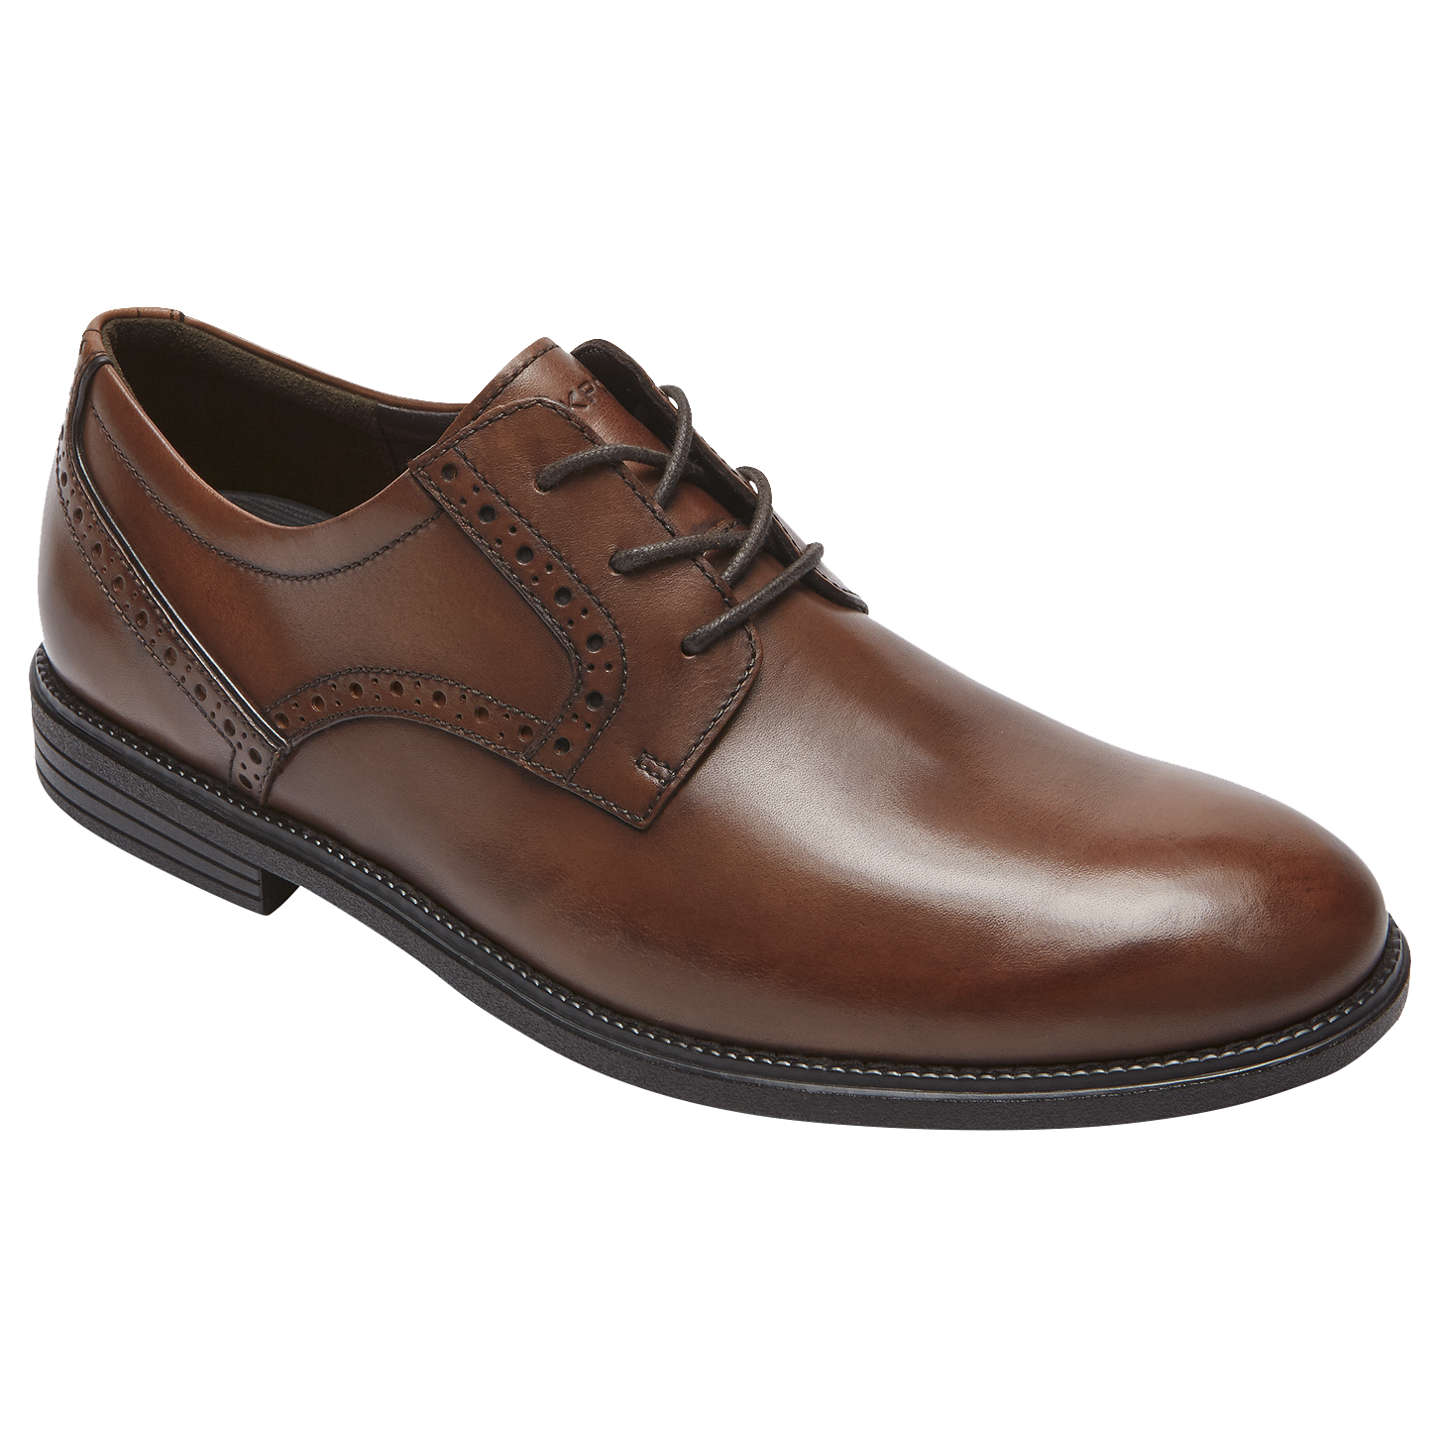 rockport shoes uk john lewis 967946